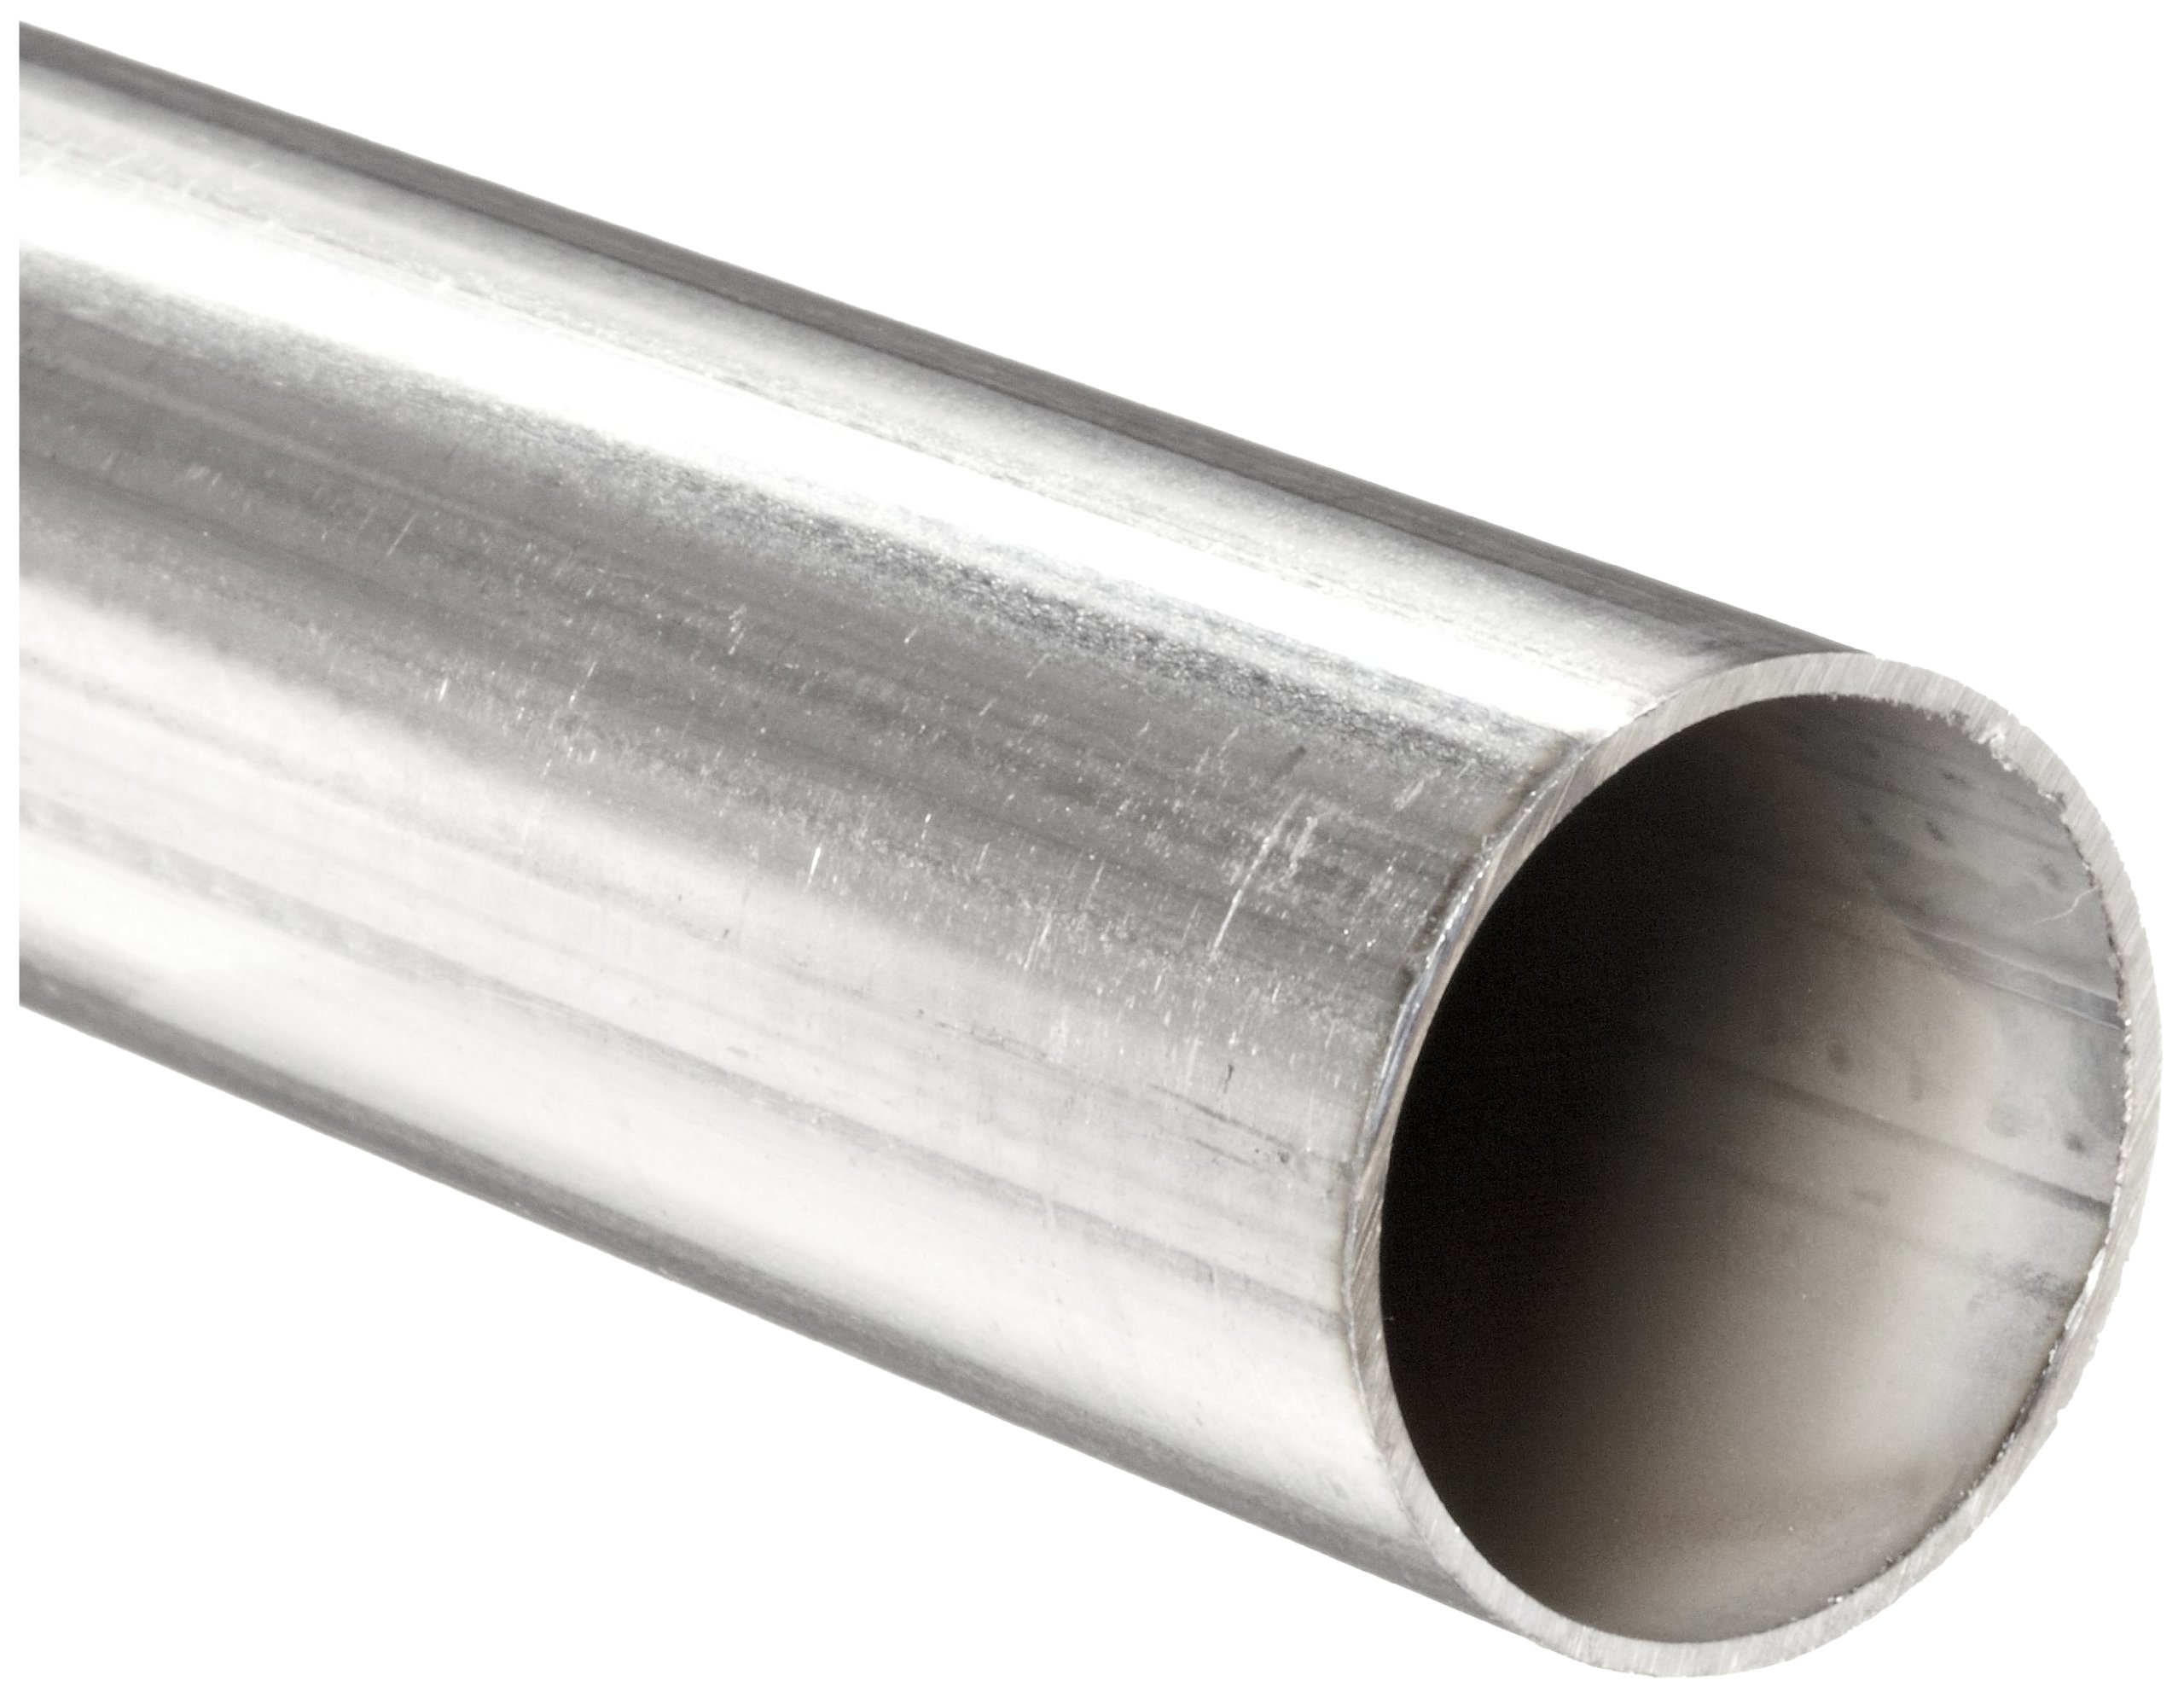 Stainless Steel 316L Welded Round Tubing, 1-1/4'' OD, 1.12'' ID, 0.065'' Wall, 12'' Length